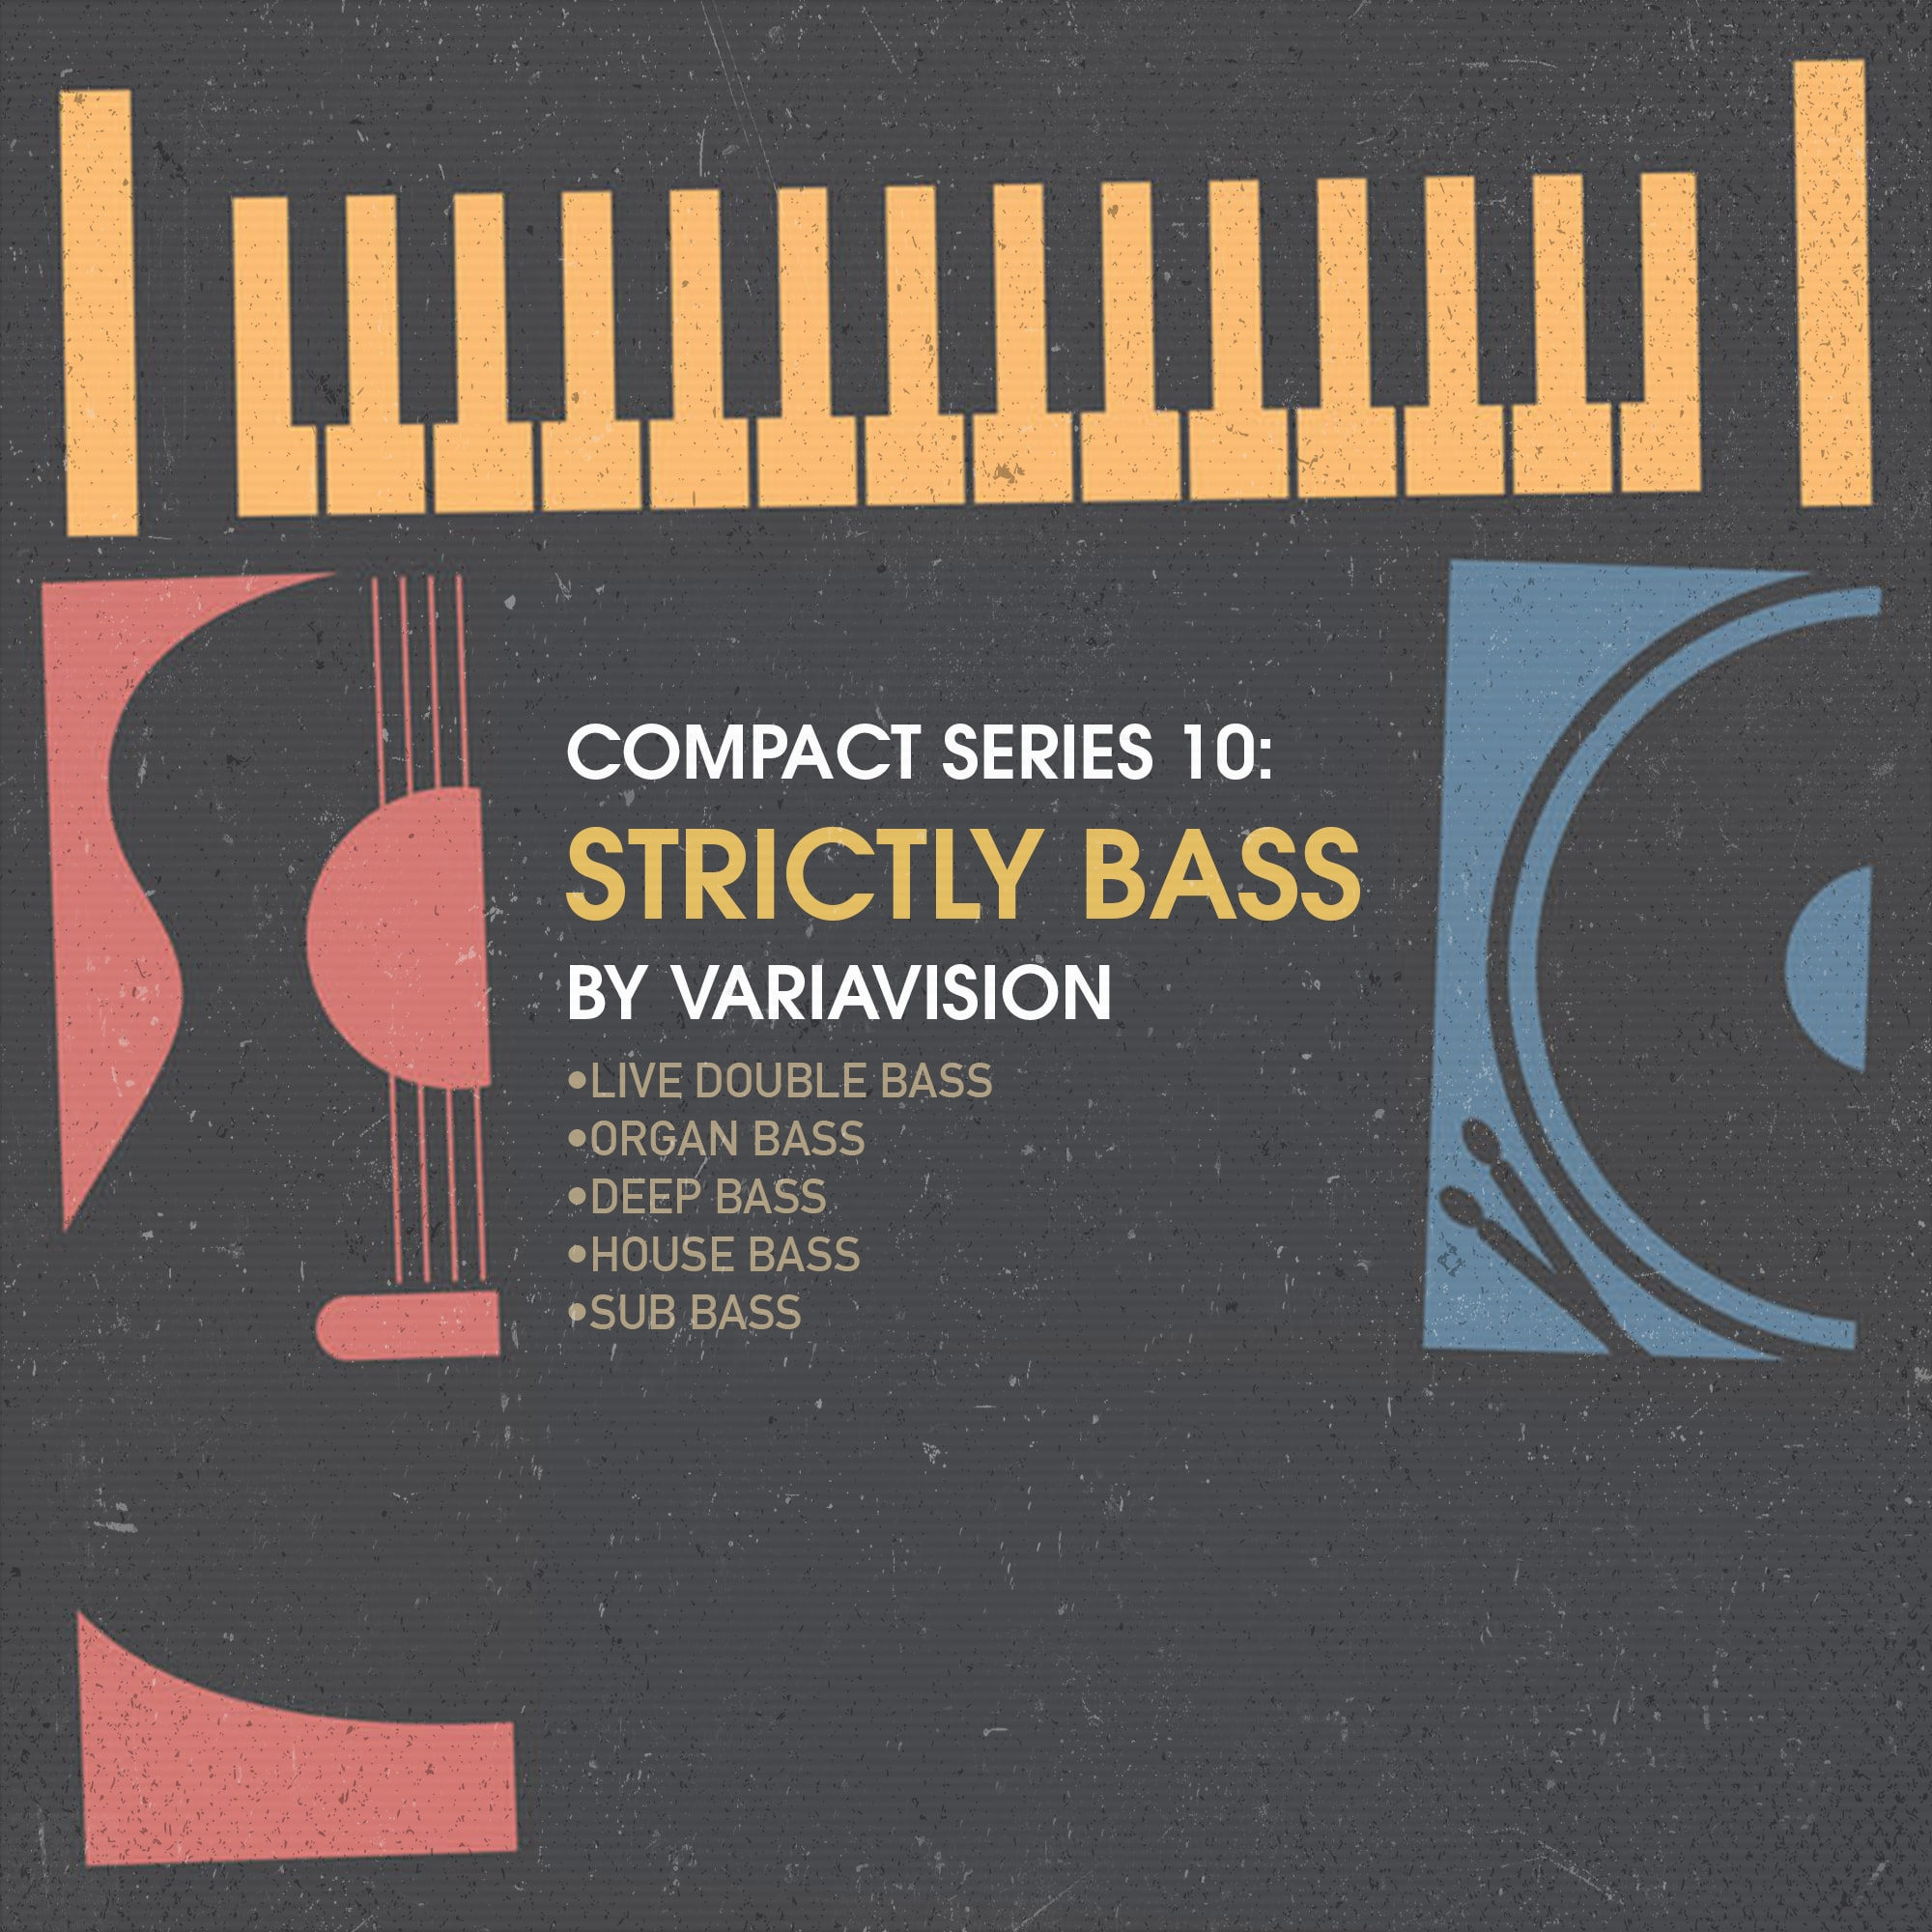 Bingoshakerz Compact Series: Strictly Bass by Variavision